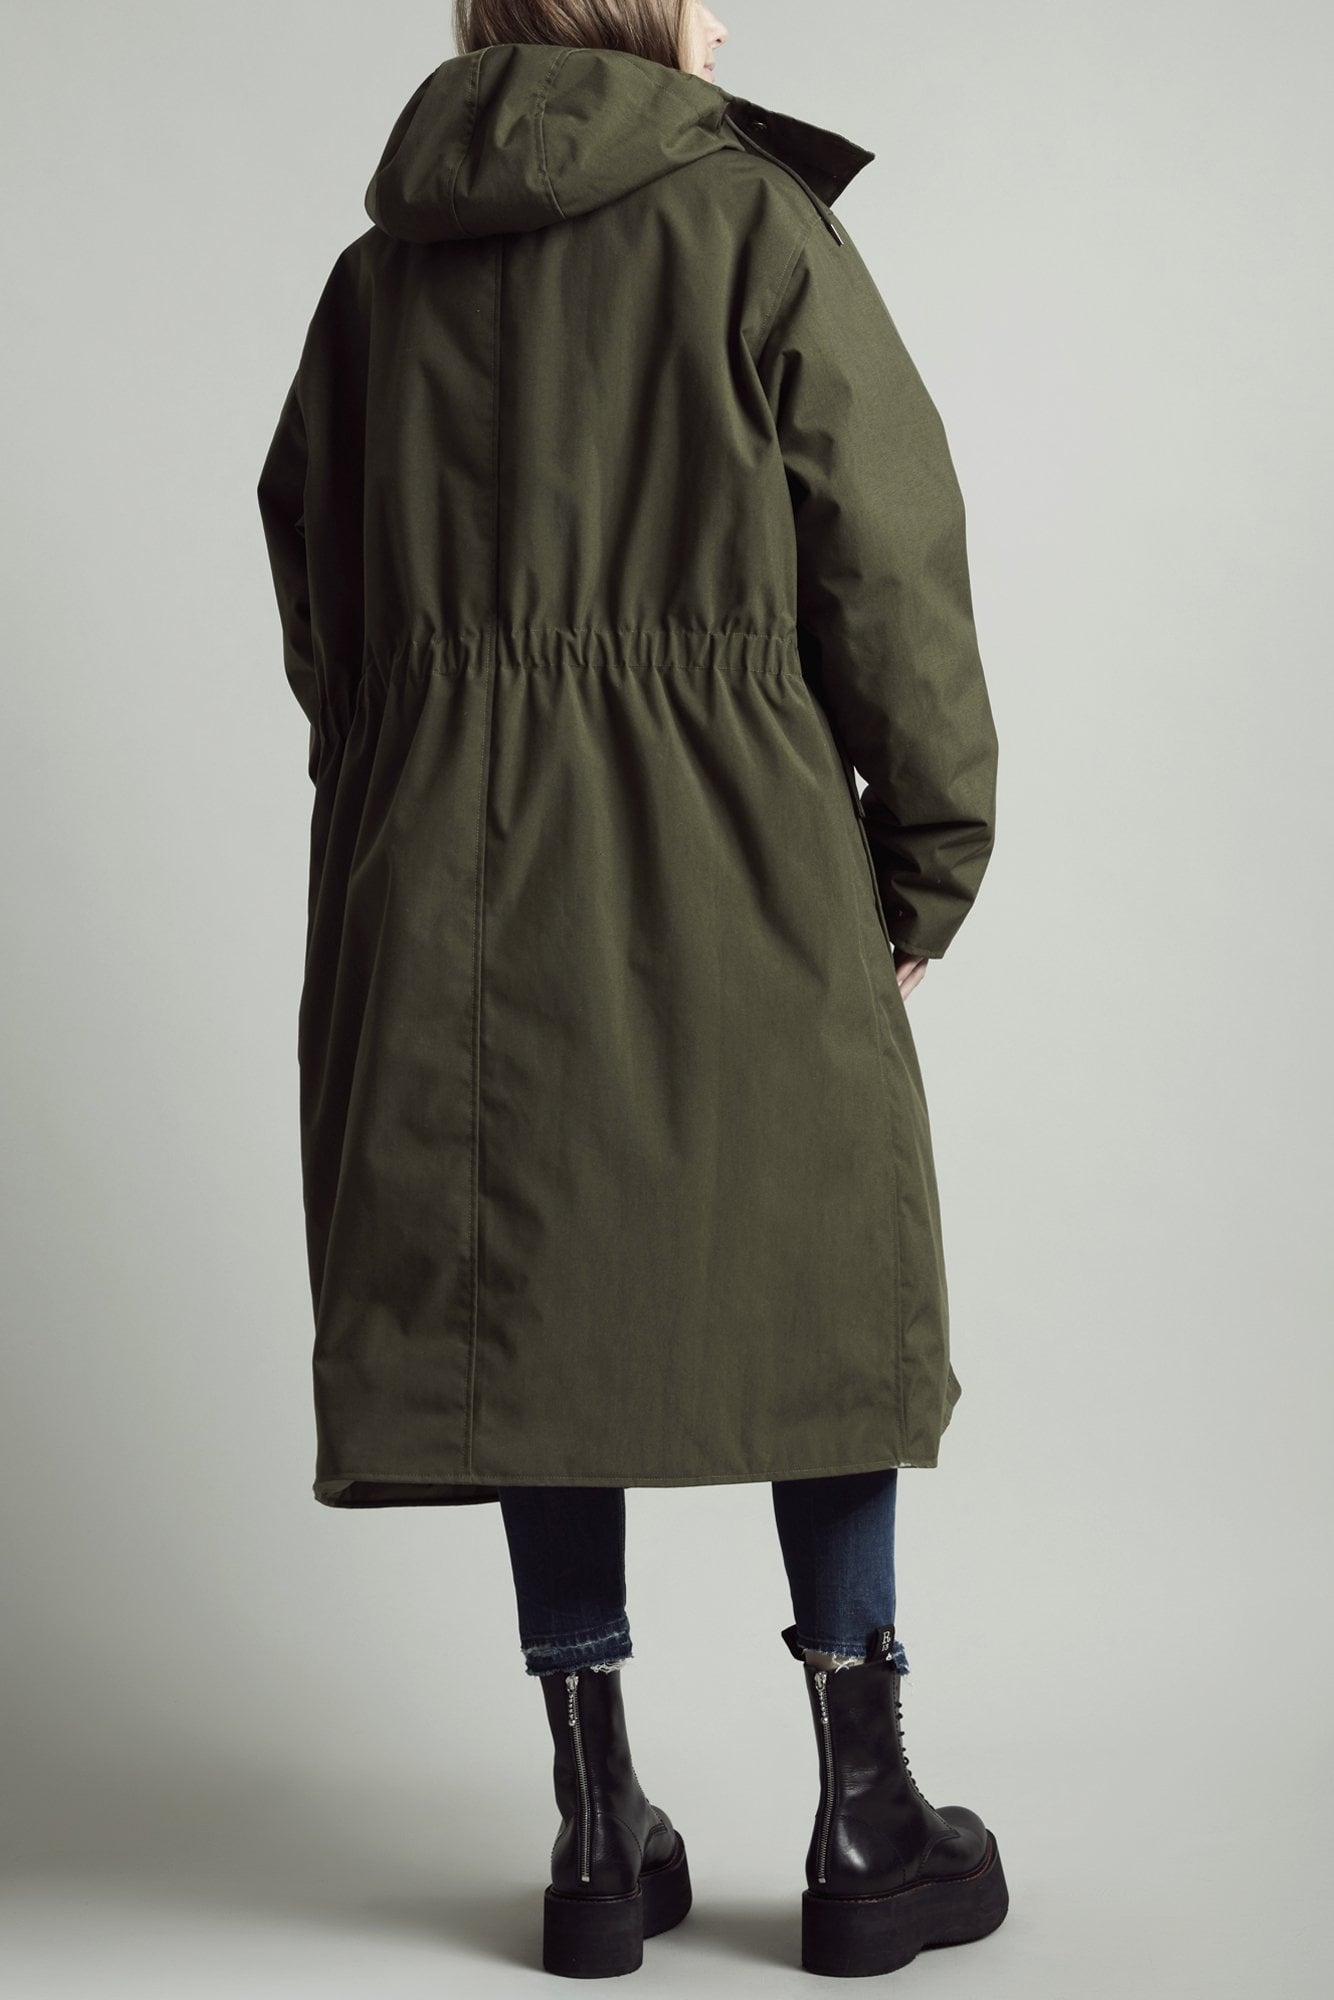 Long Anorak Puffer Jacket - Khaki and Camo